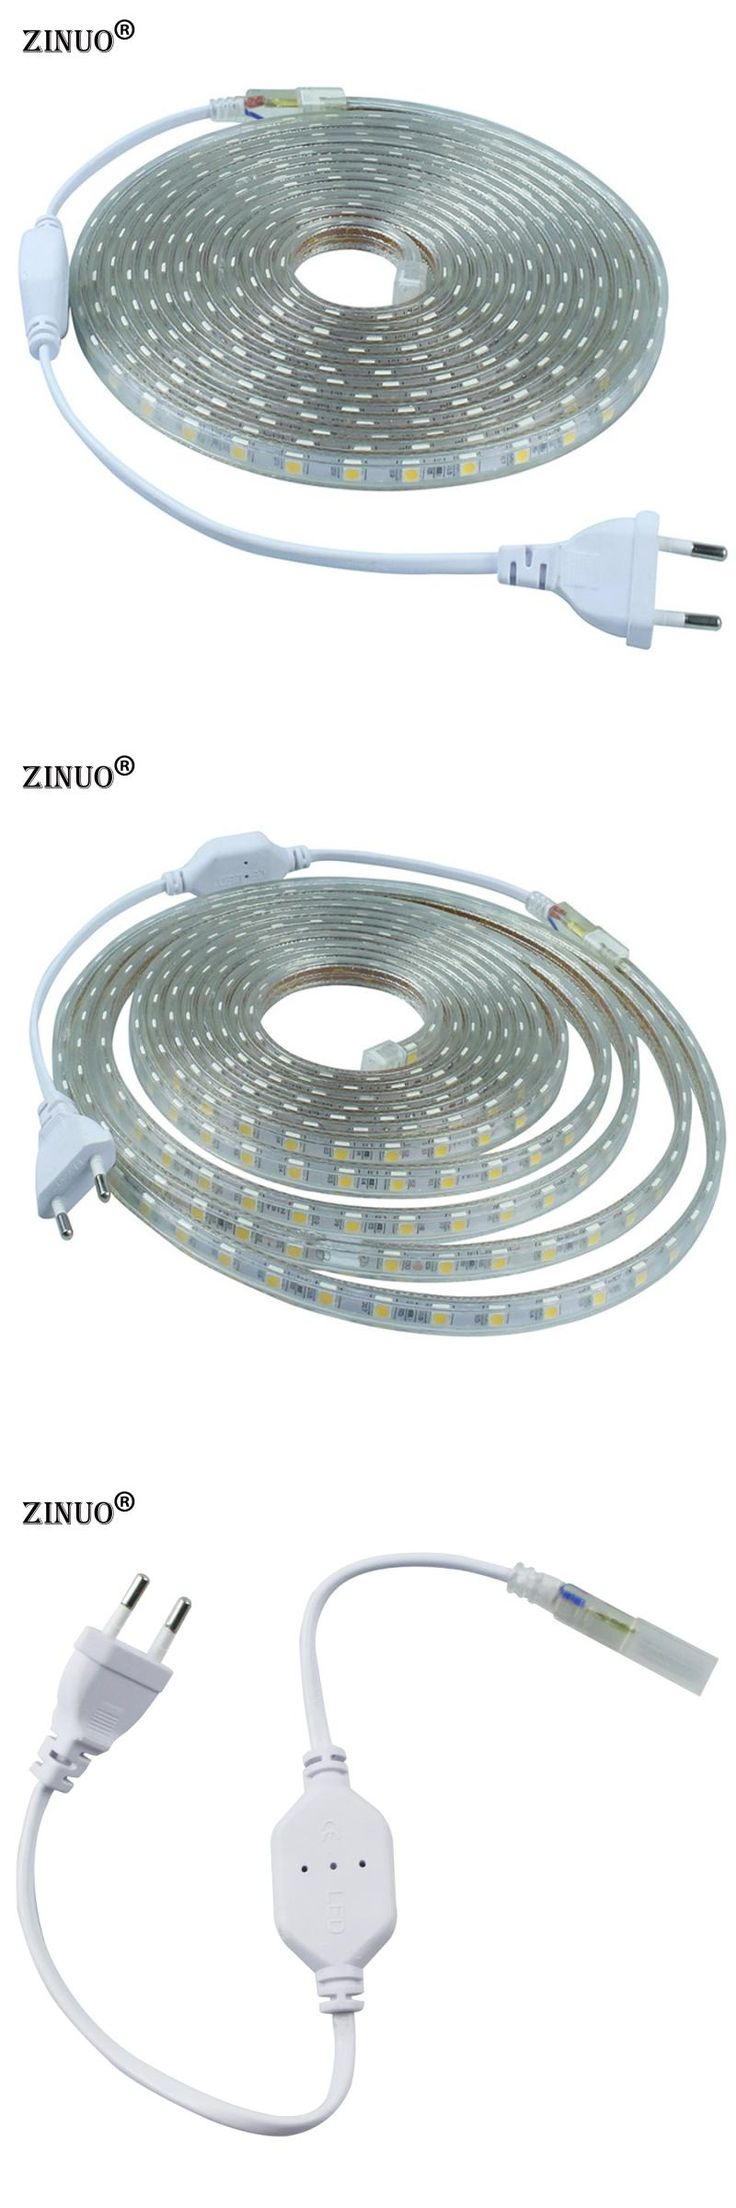 [Visit to Buy] ZINUO 220V 5050 Flexible Led Strip Light 1M/2M/3M/4M/5M/6M/7M/8M/9M/10M/15M/20M+Power Plug,60leds/m IP65 Waterproof led Ribbon #Advertisement